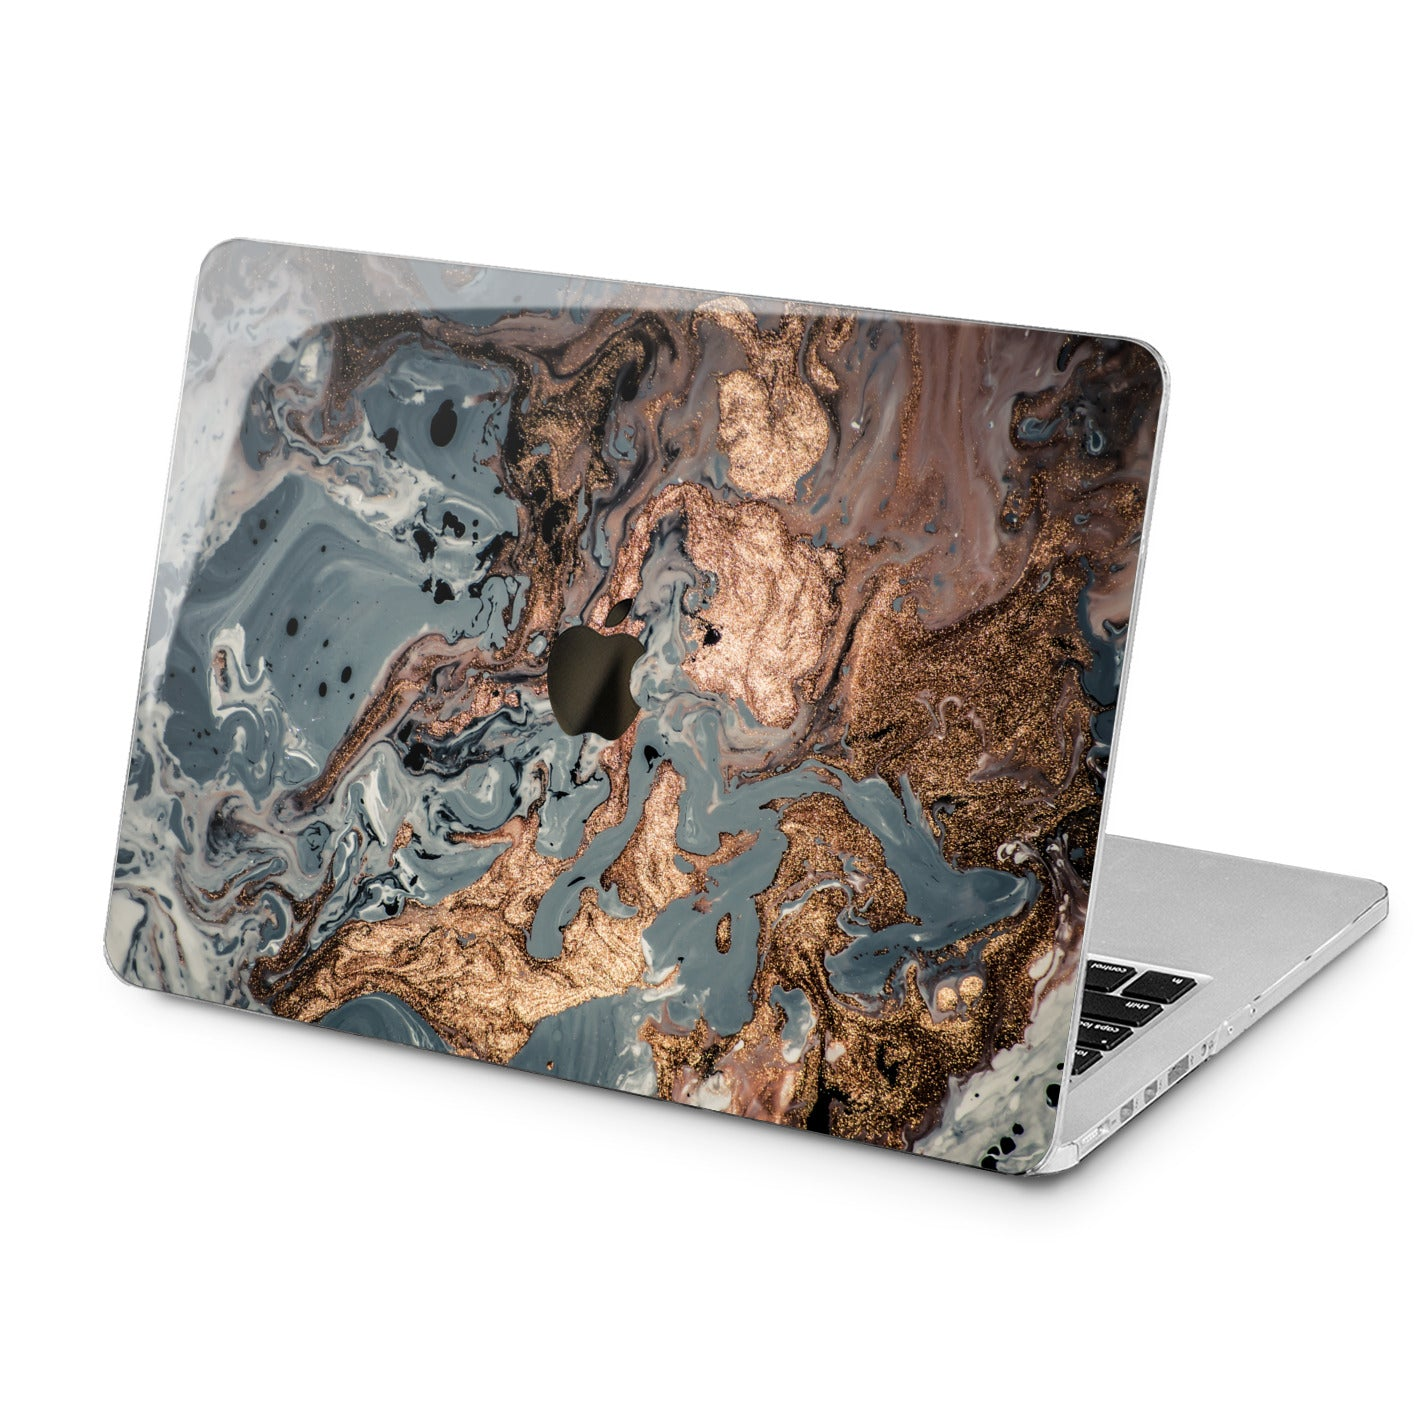 Lex Altern Lex Altern Bronze Marble Case for your Laptop Apple Macbook.